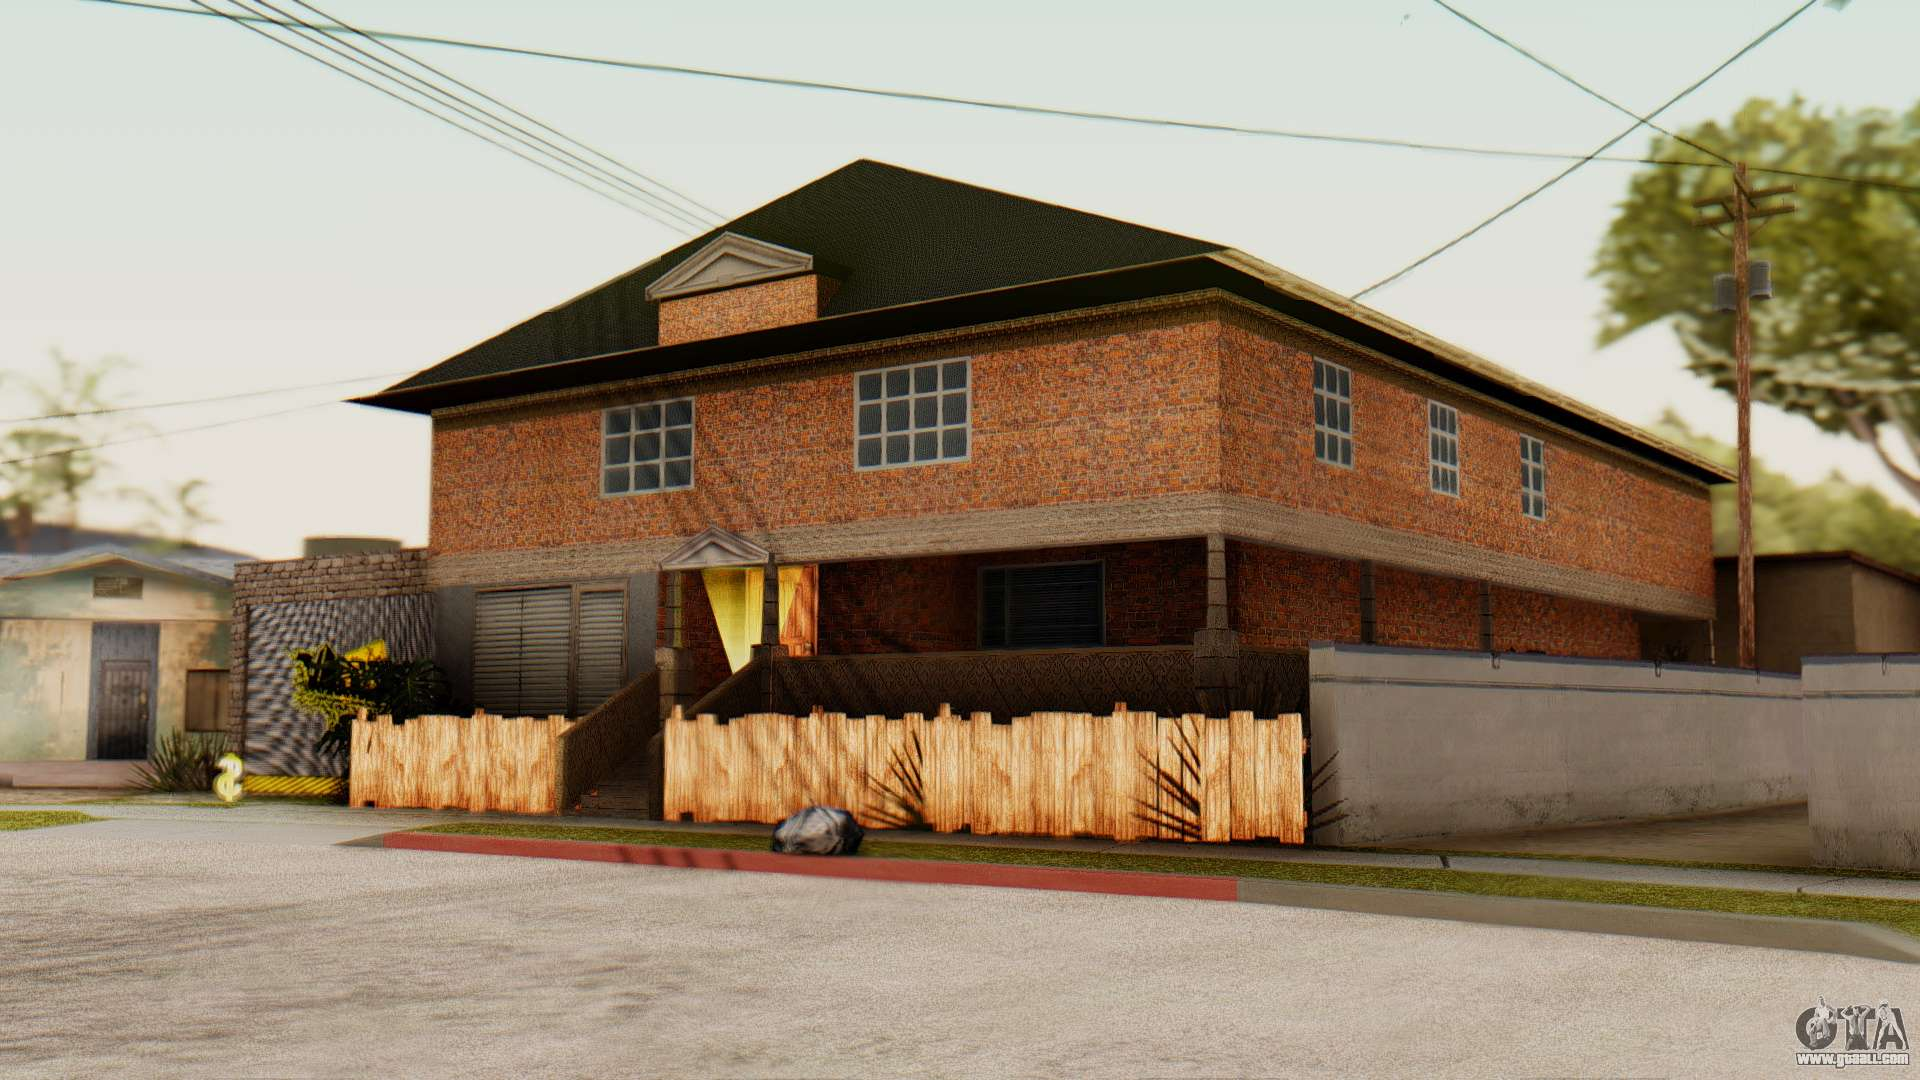 The Cj House For Gta San Andreas